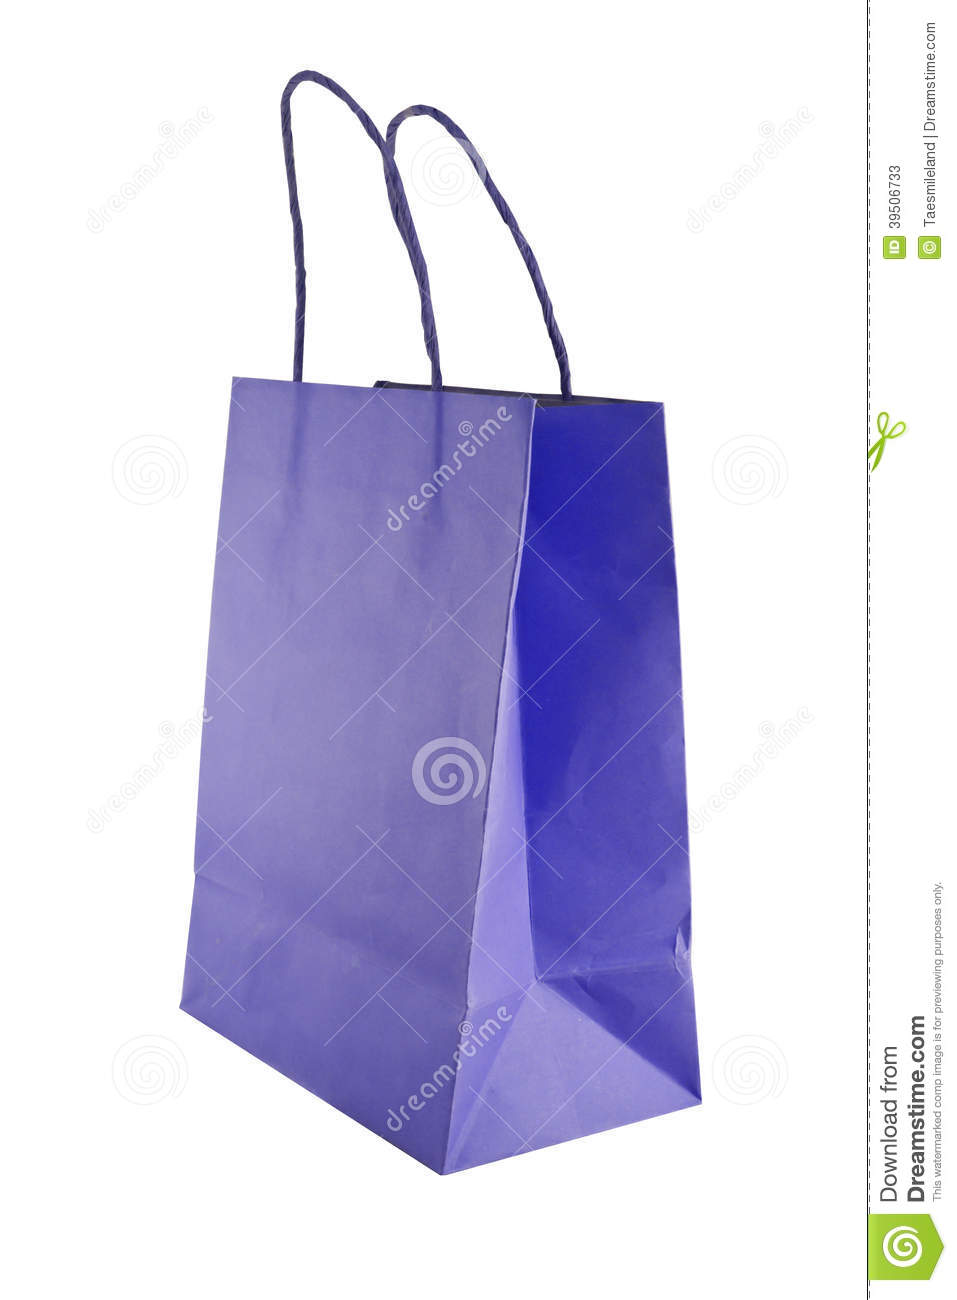 Bag for shopping isolated